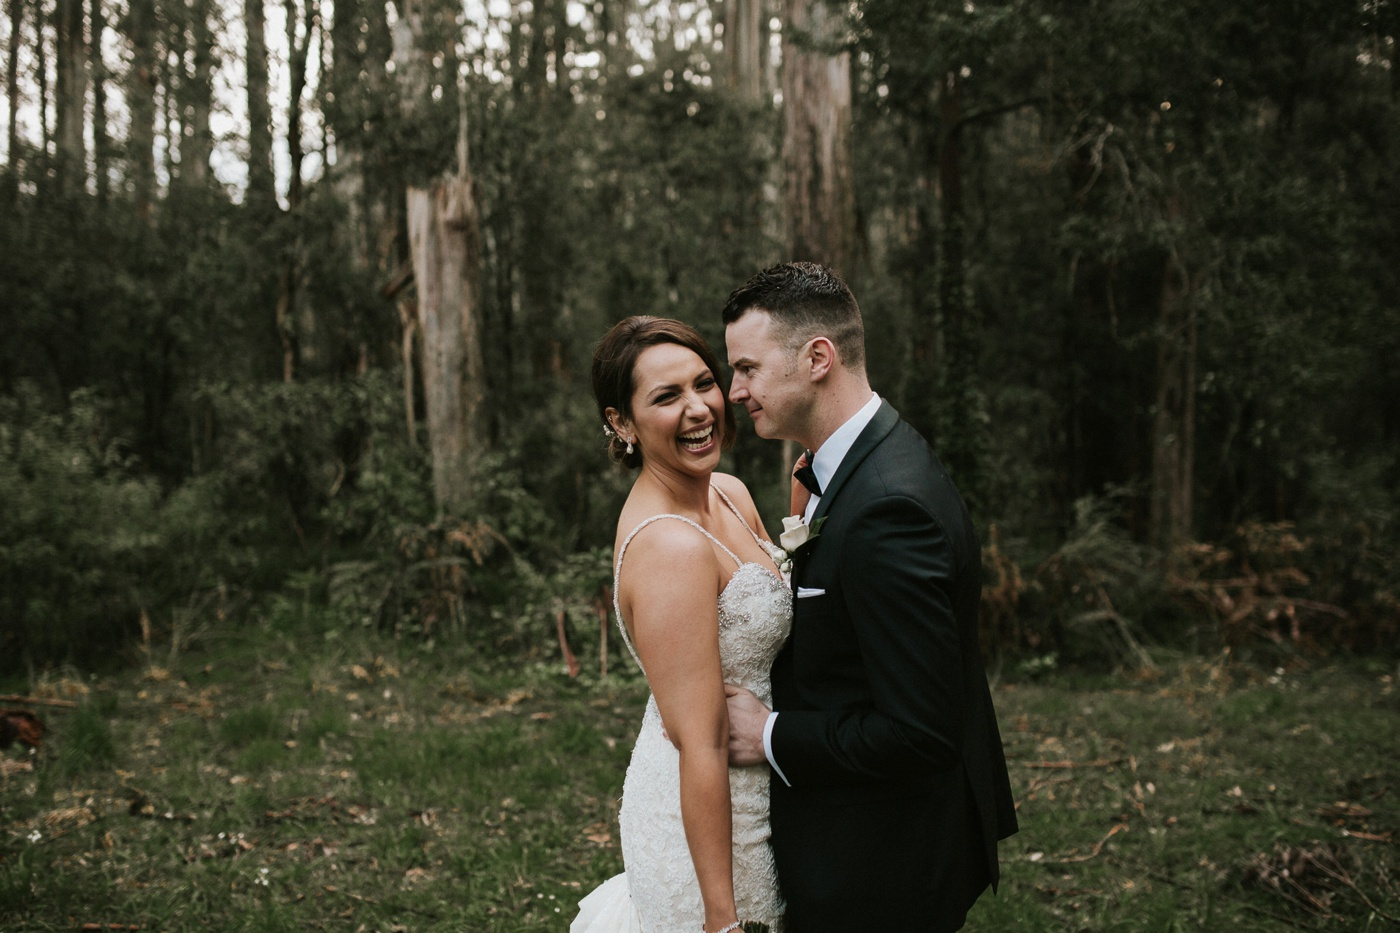 wesleybianca_dandenongs-sherbrooke-poets-lane-wedding_melbourne-quirky-fun-candid-wedding-photography_50